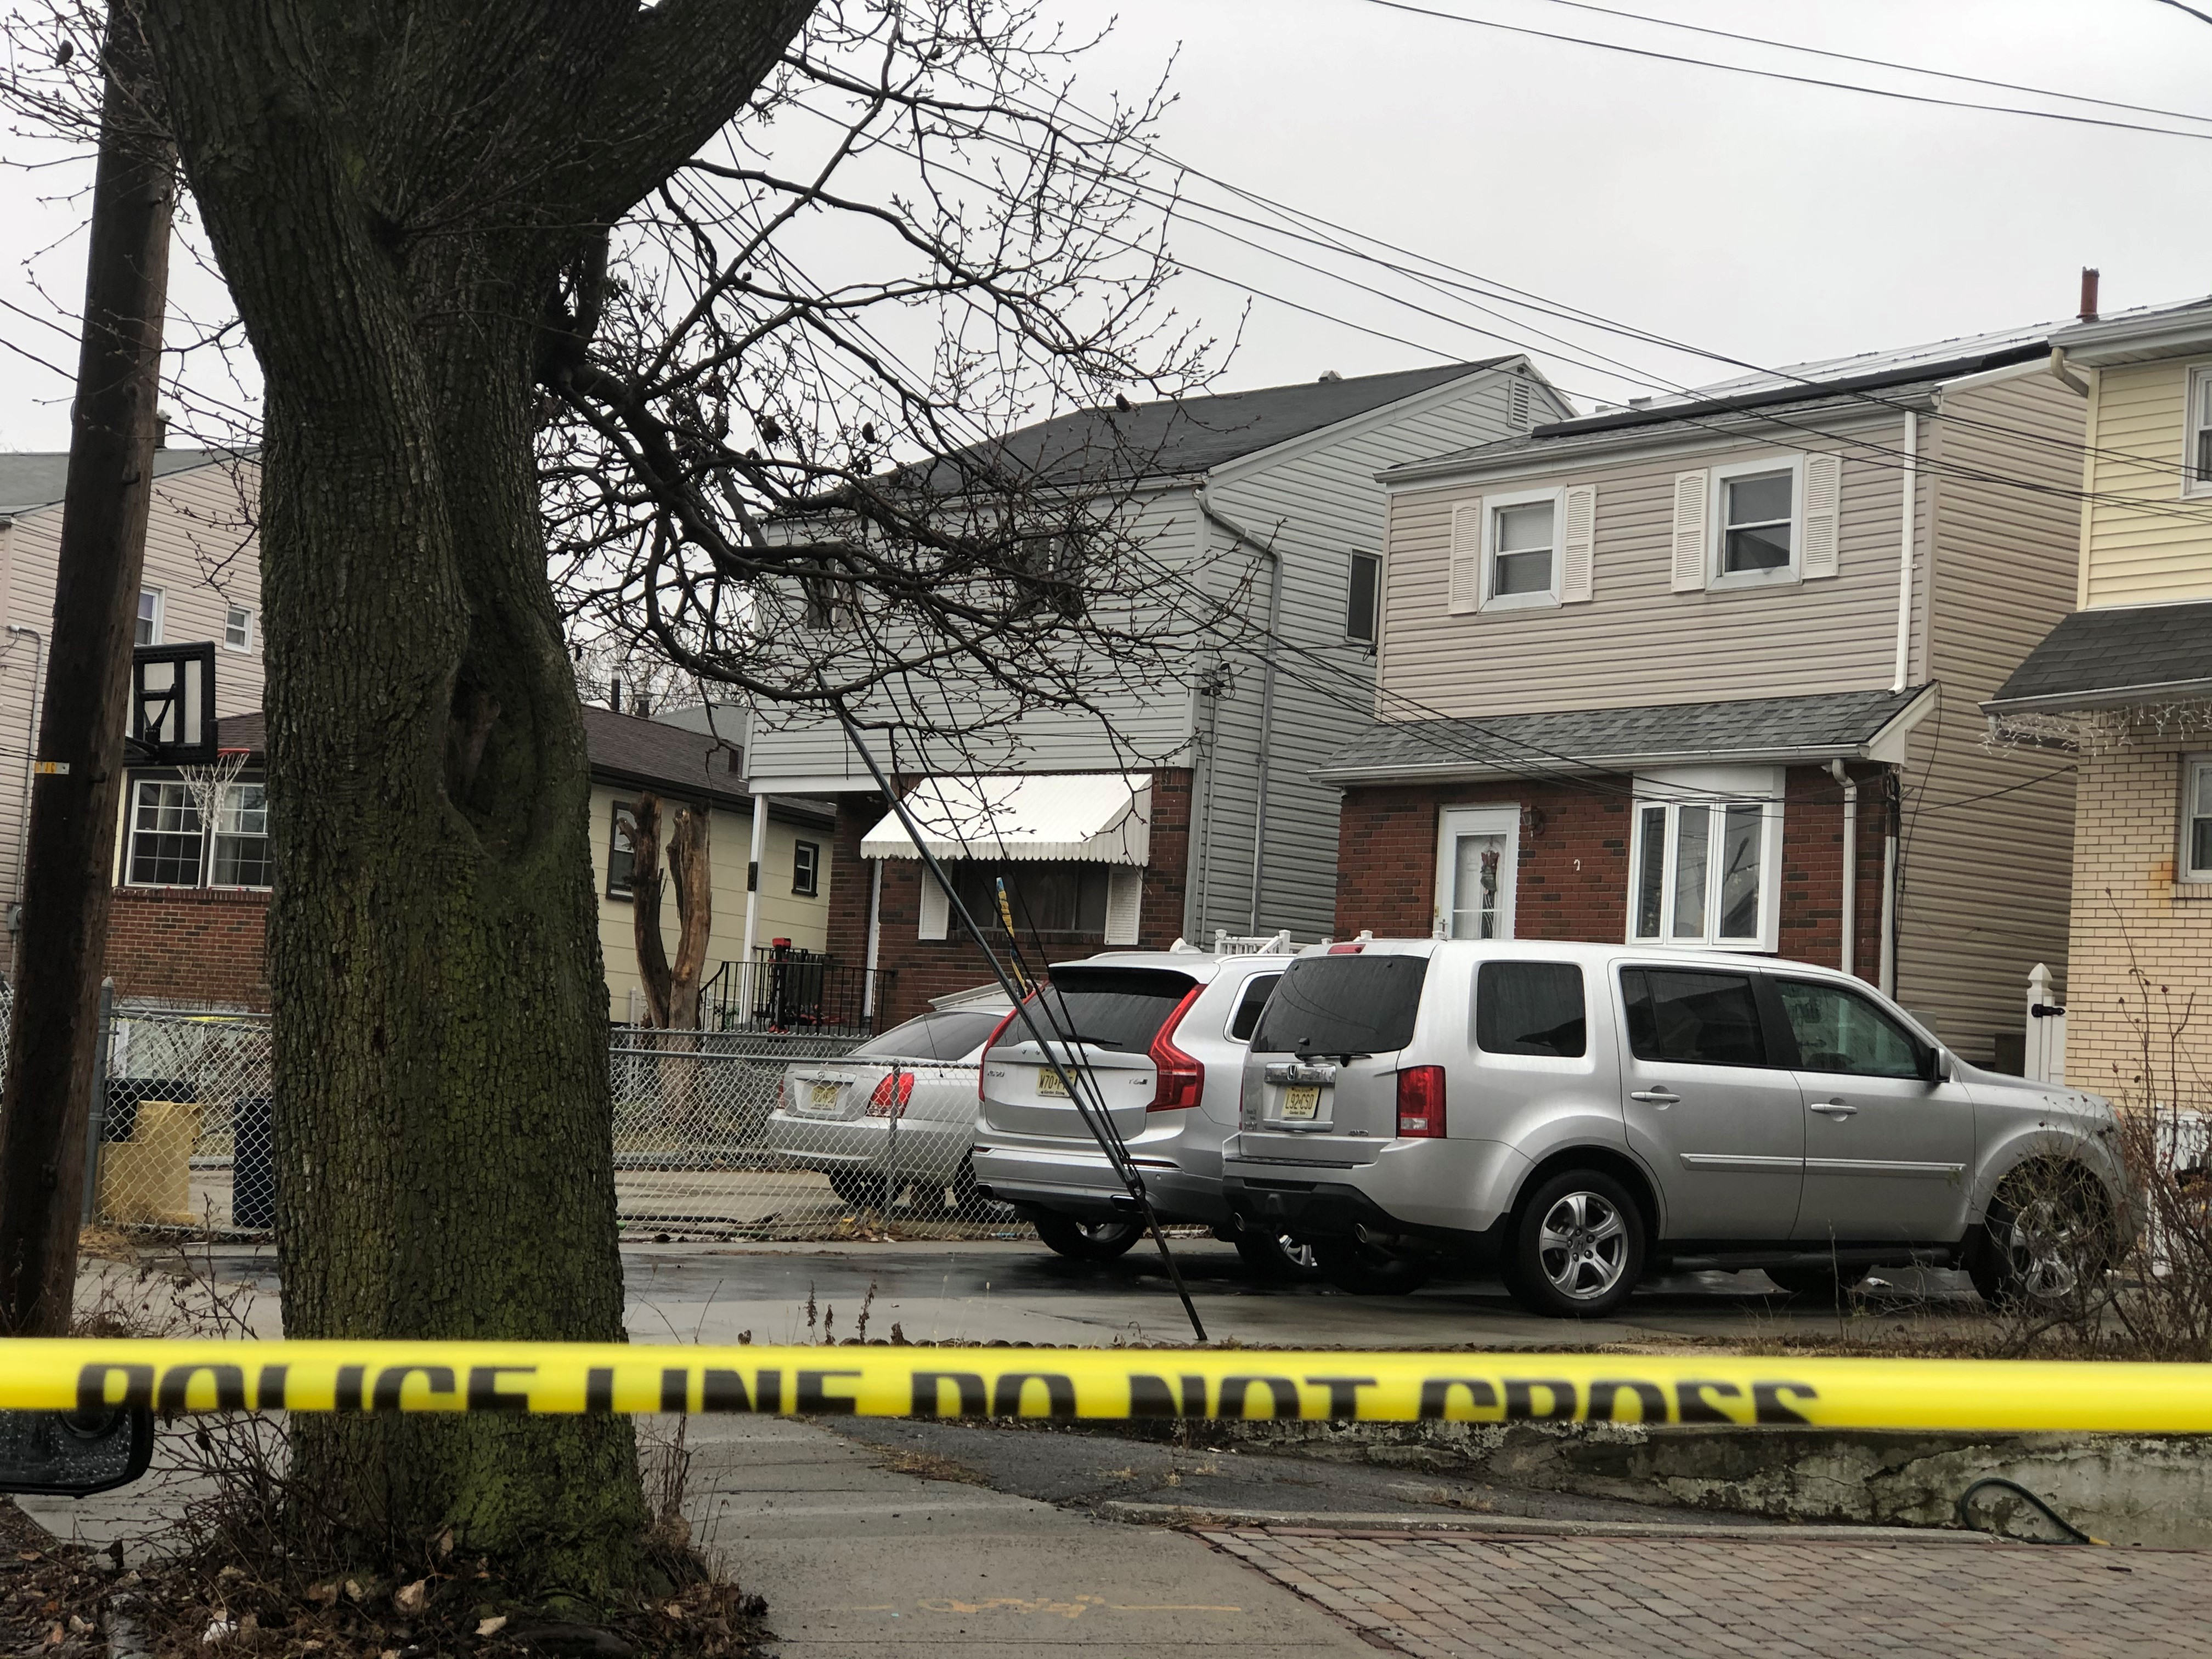 Jersey City home where newborn was found dead was cited last year for multiple health code violations